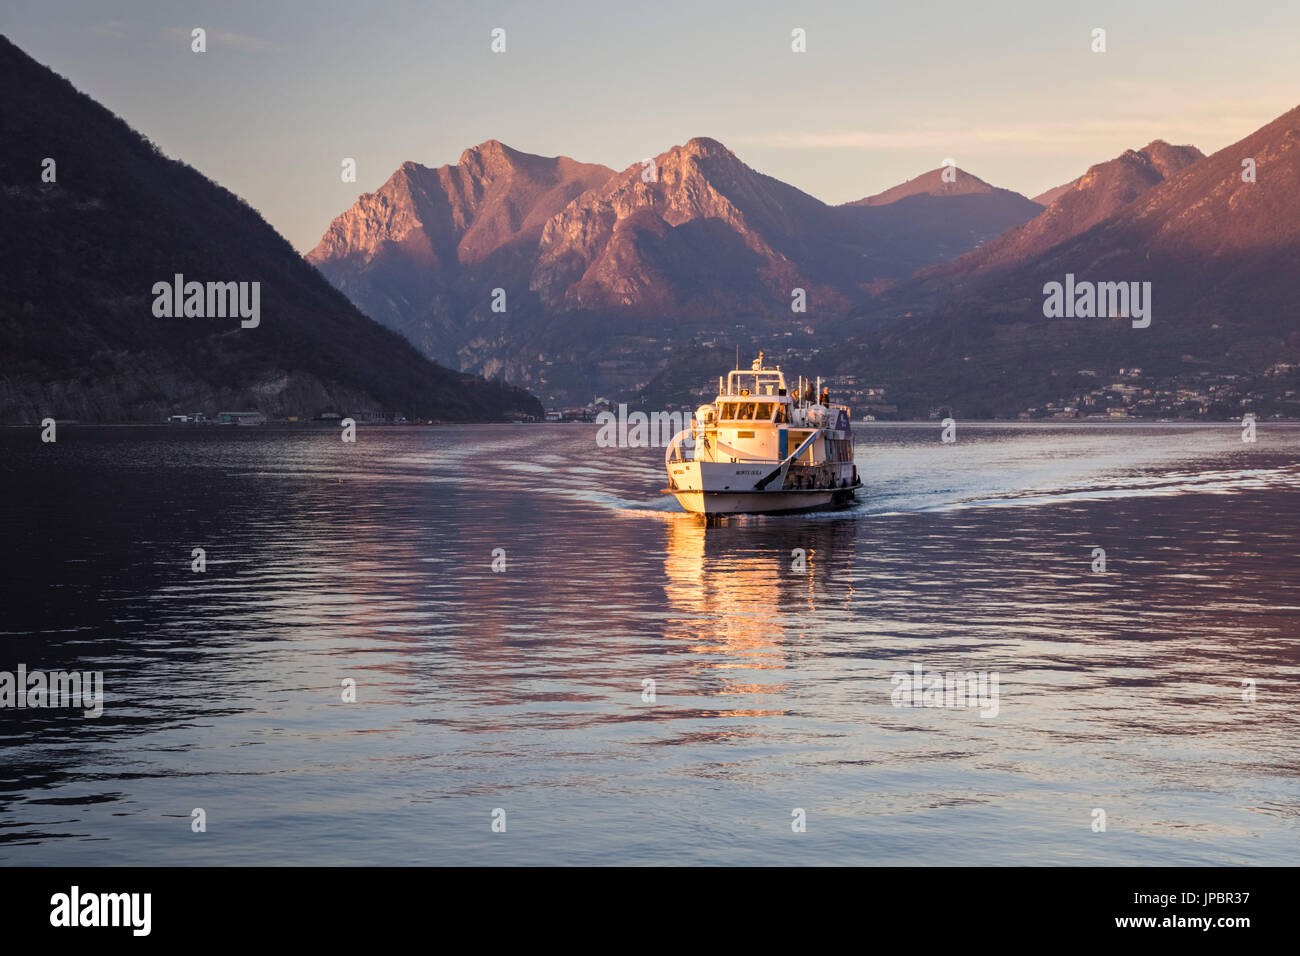 A boat approaching Sulzano, in the distance the mount Corna Trentapassi, Brescia Province, Iseo Lake, Lombardy, Italy. - Stock Image